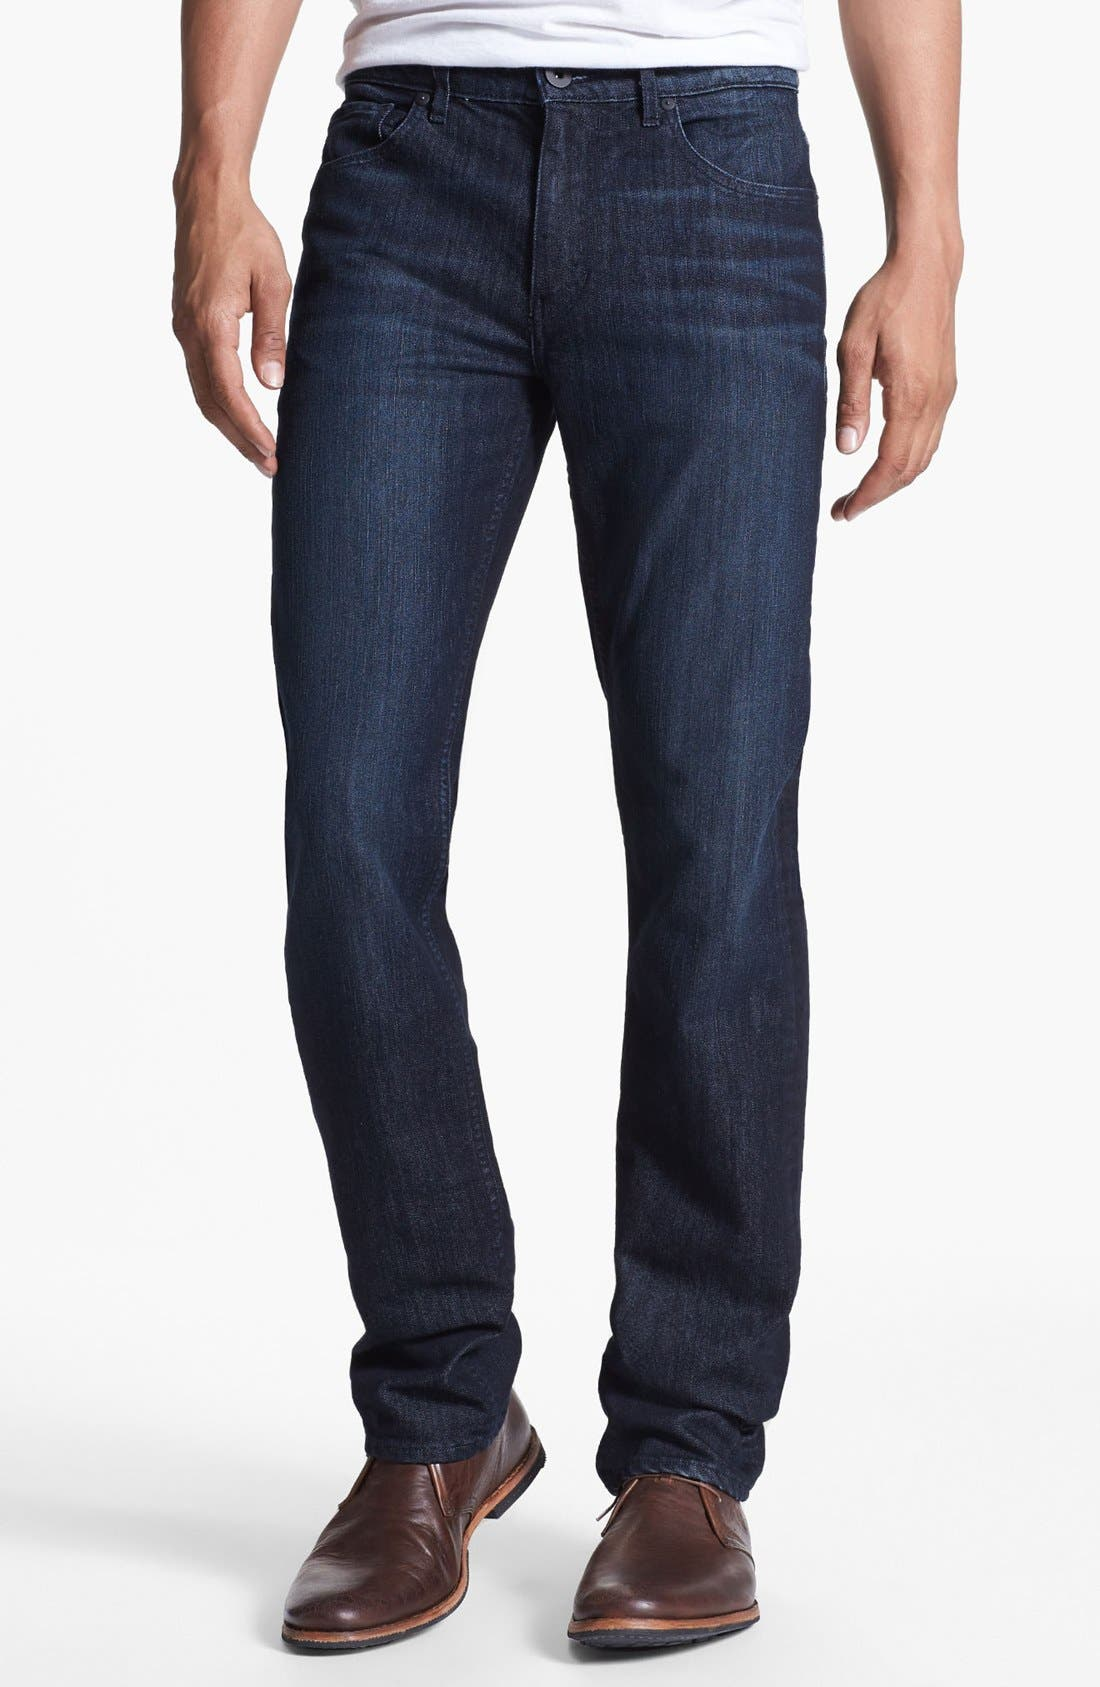 'Doheny' Straight Leg Jeans,                             Alternate thumbnail 4, color,                             400